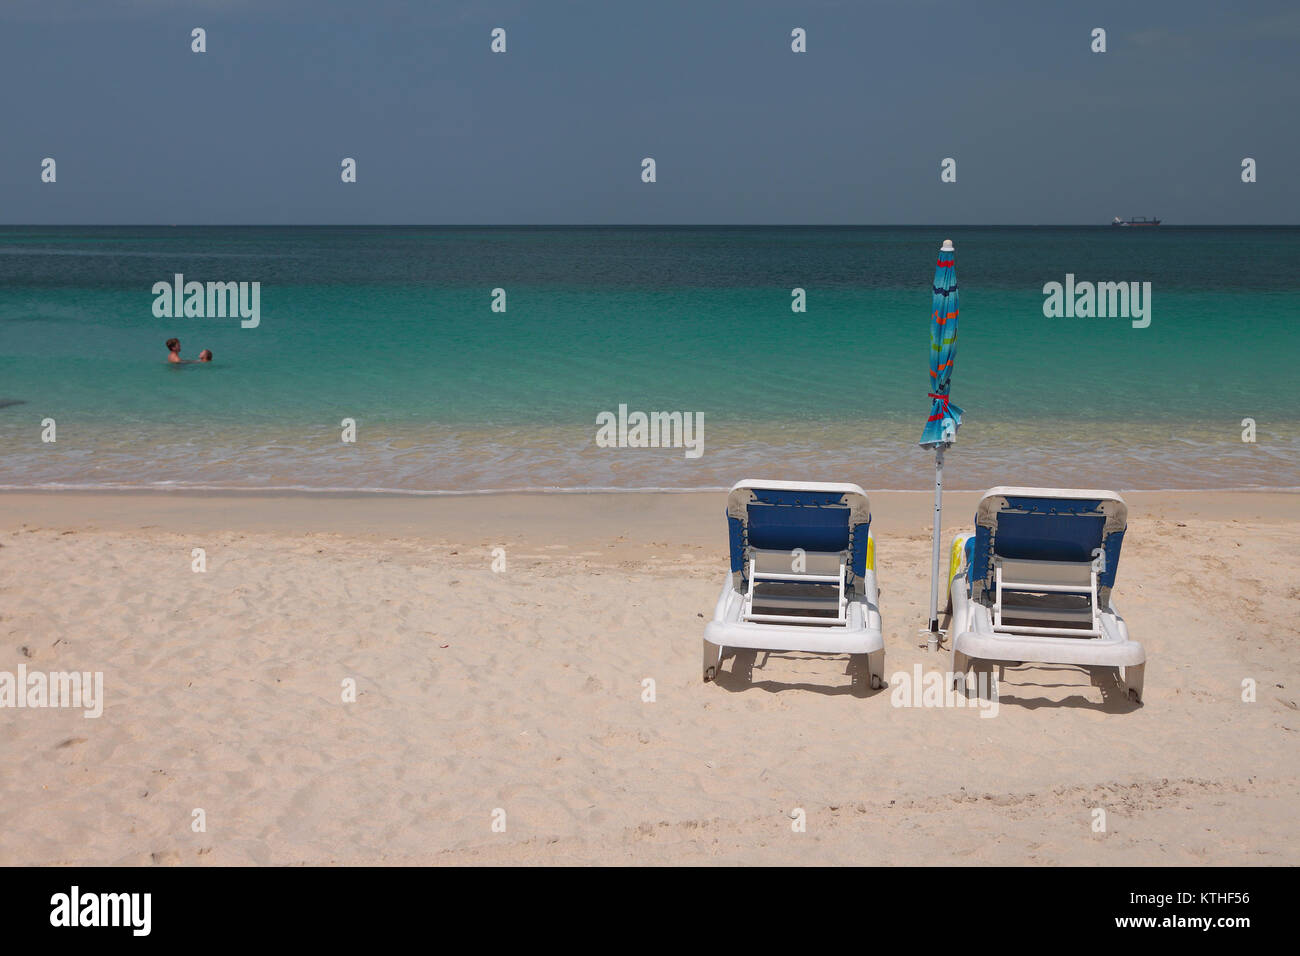 Chaise lounges on sandy beach. St. George's, Grenada - Stock Image